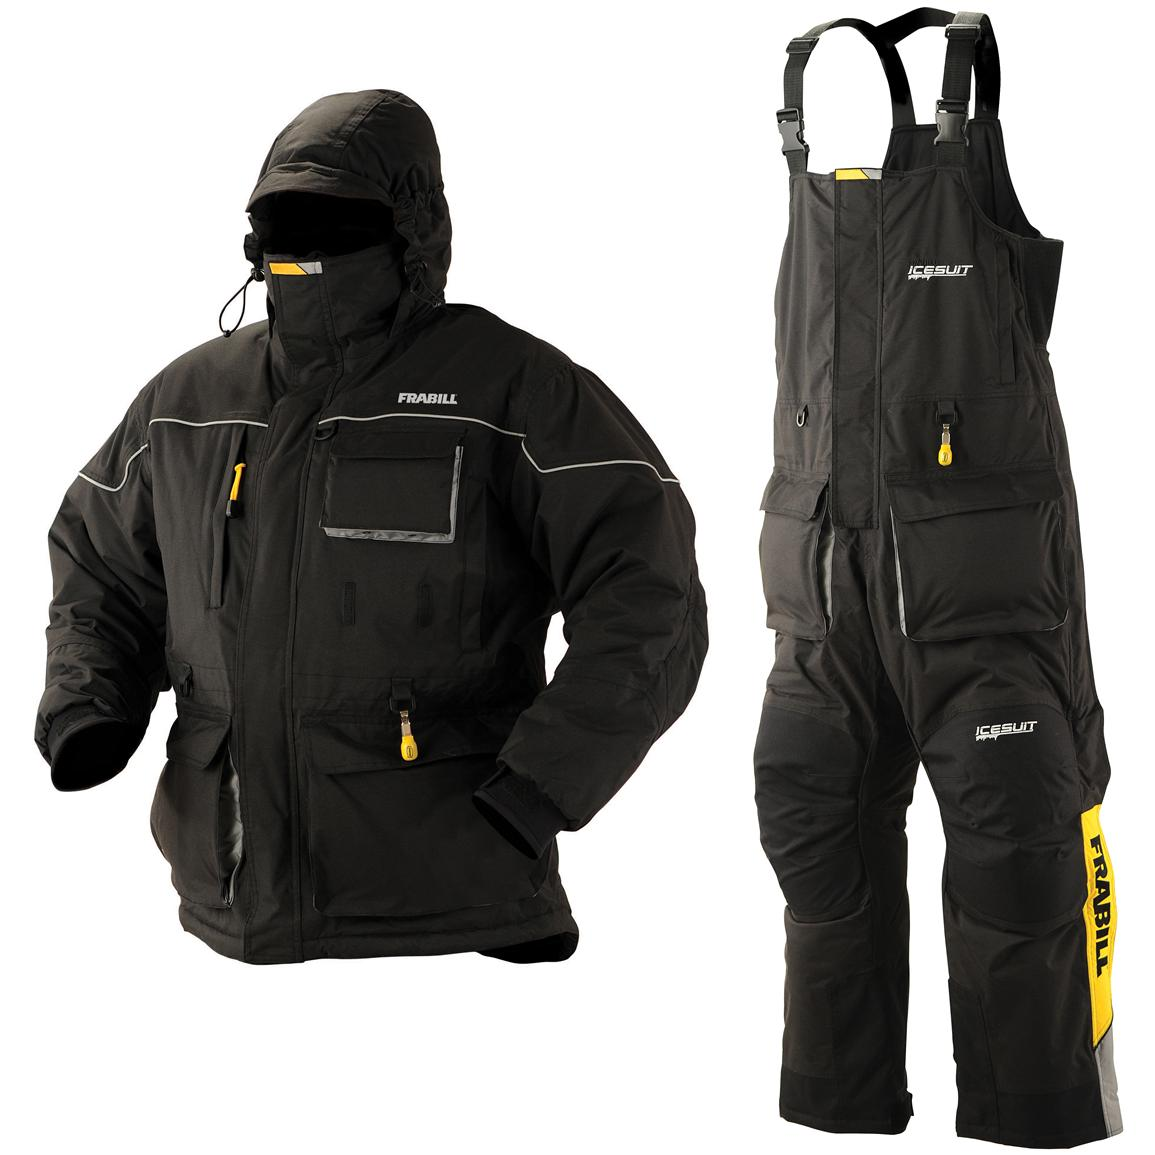 Frabill® Icesuit Jacket and Bib Combo